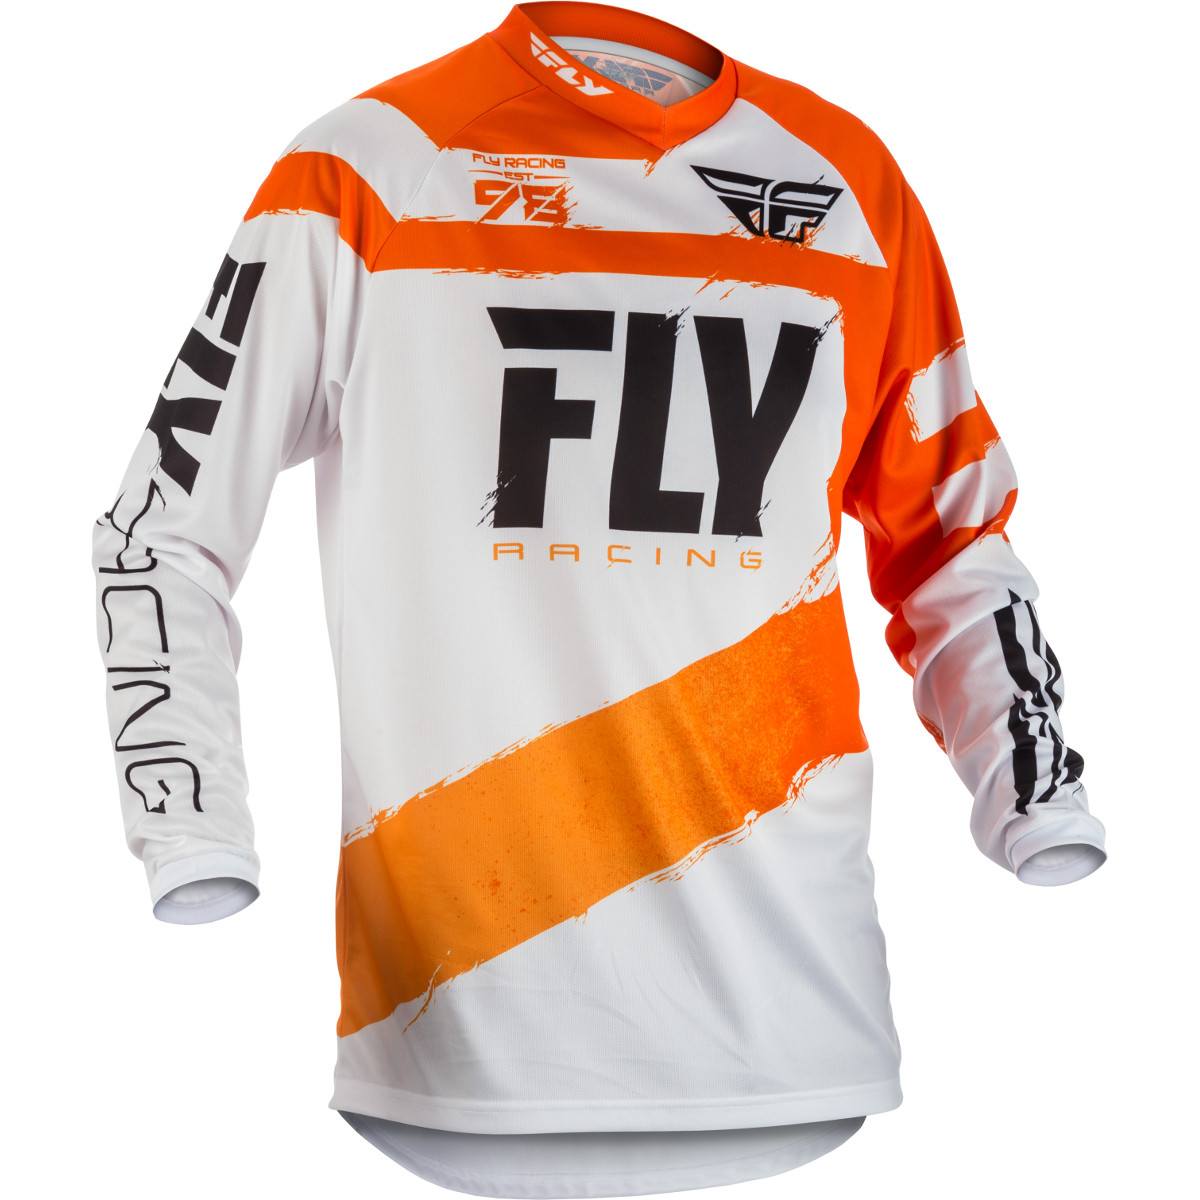 Fly-Racing-Kids-Jersey-F-16